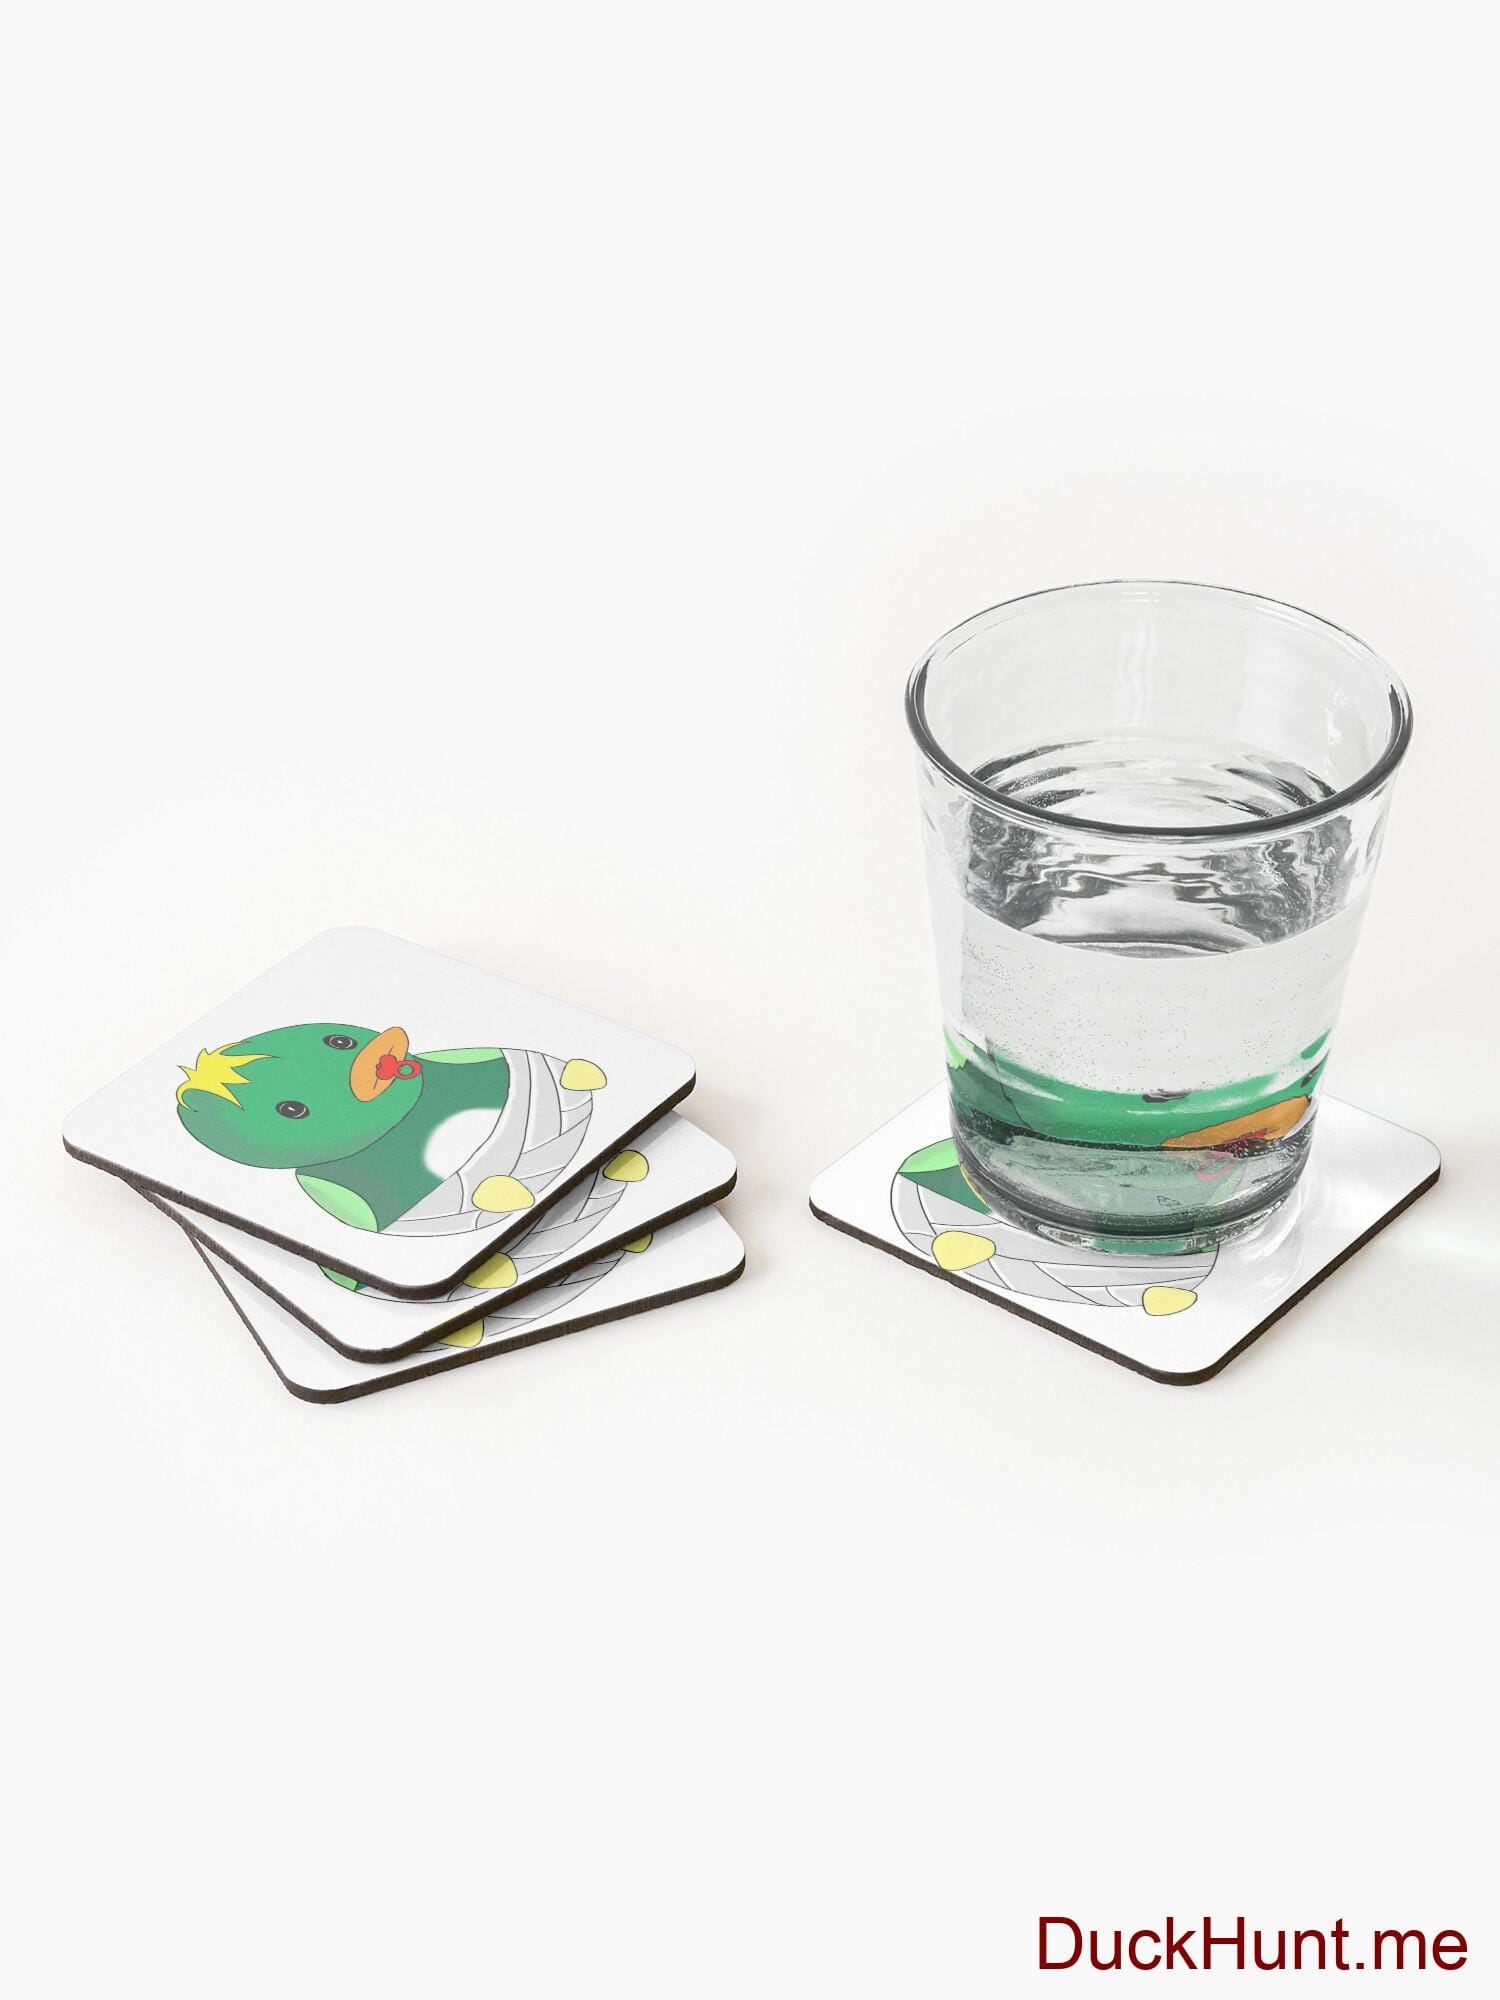 Baby duck Coasters (Set of 4) alternative image 1